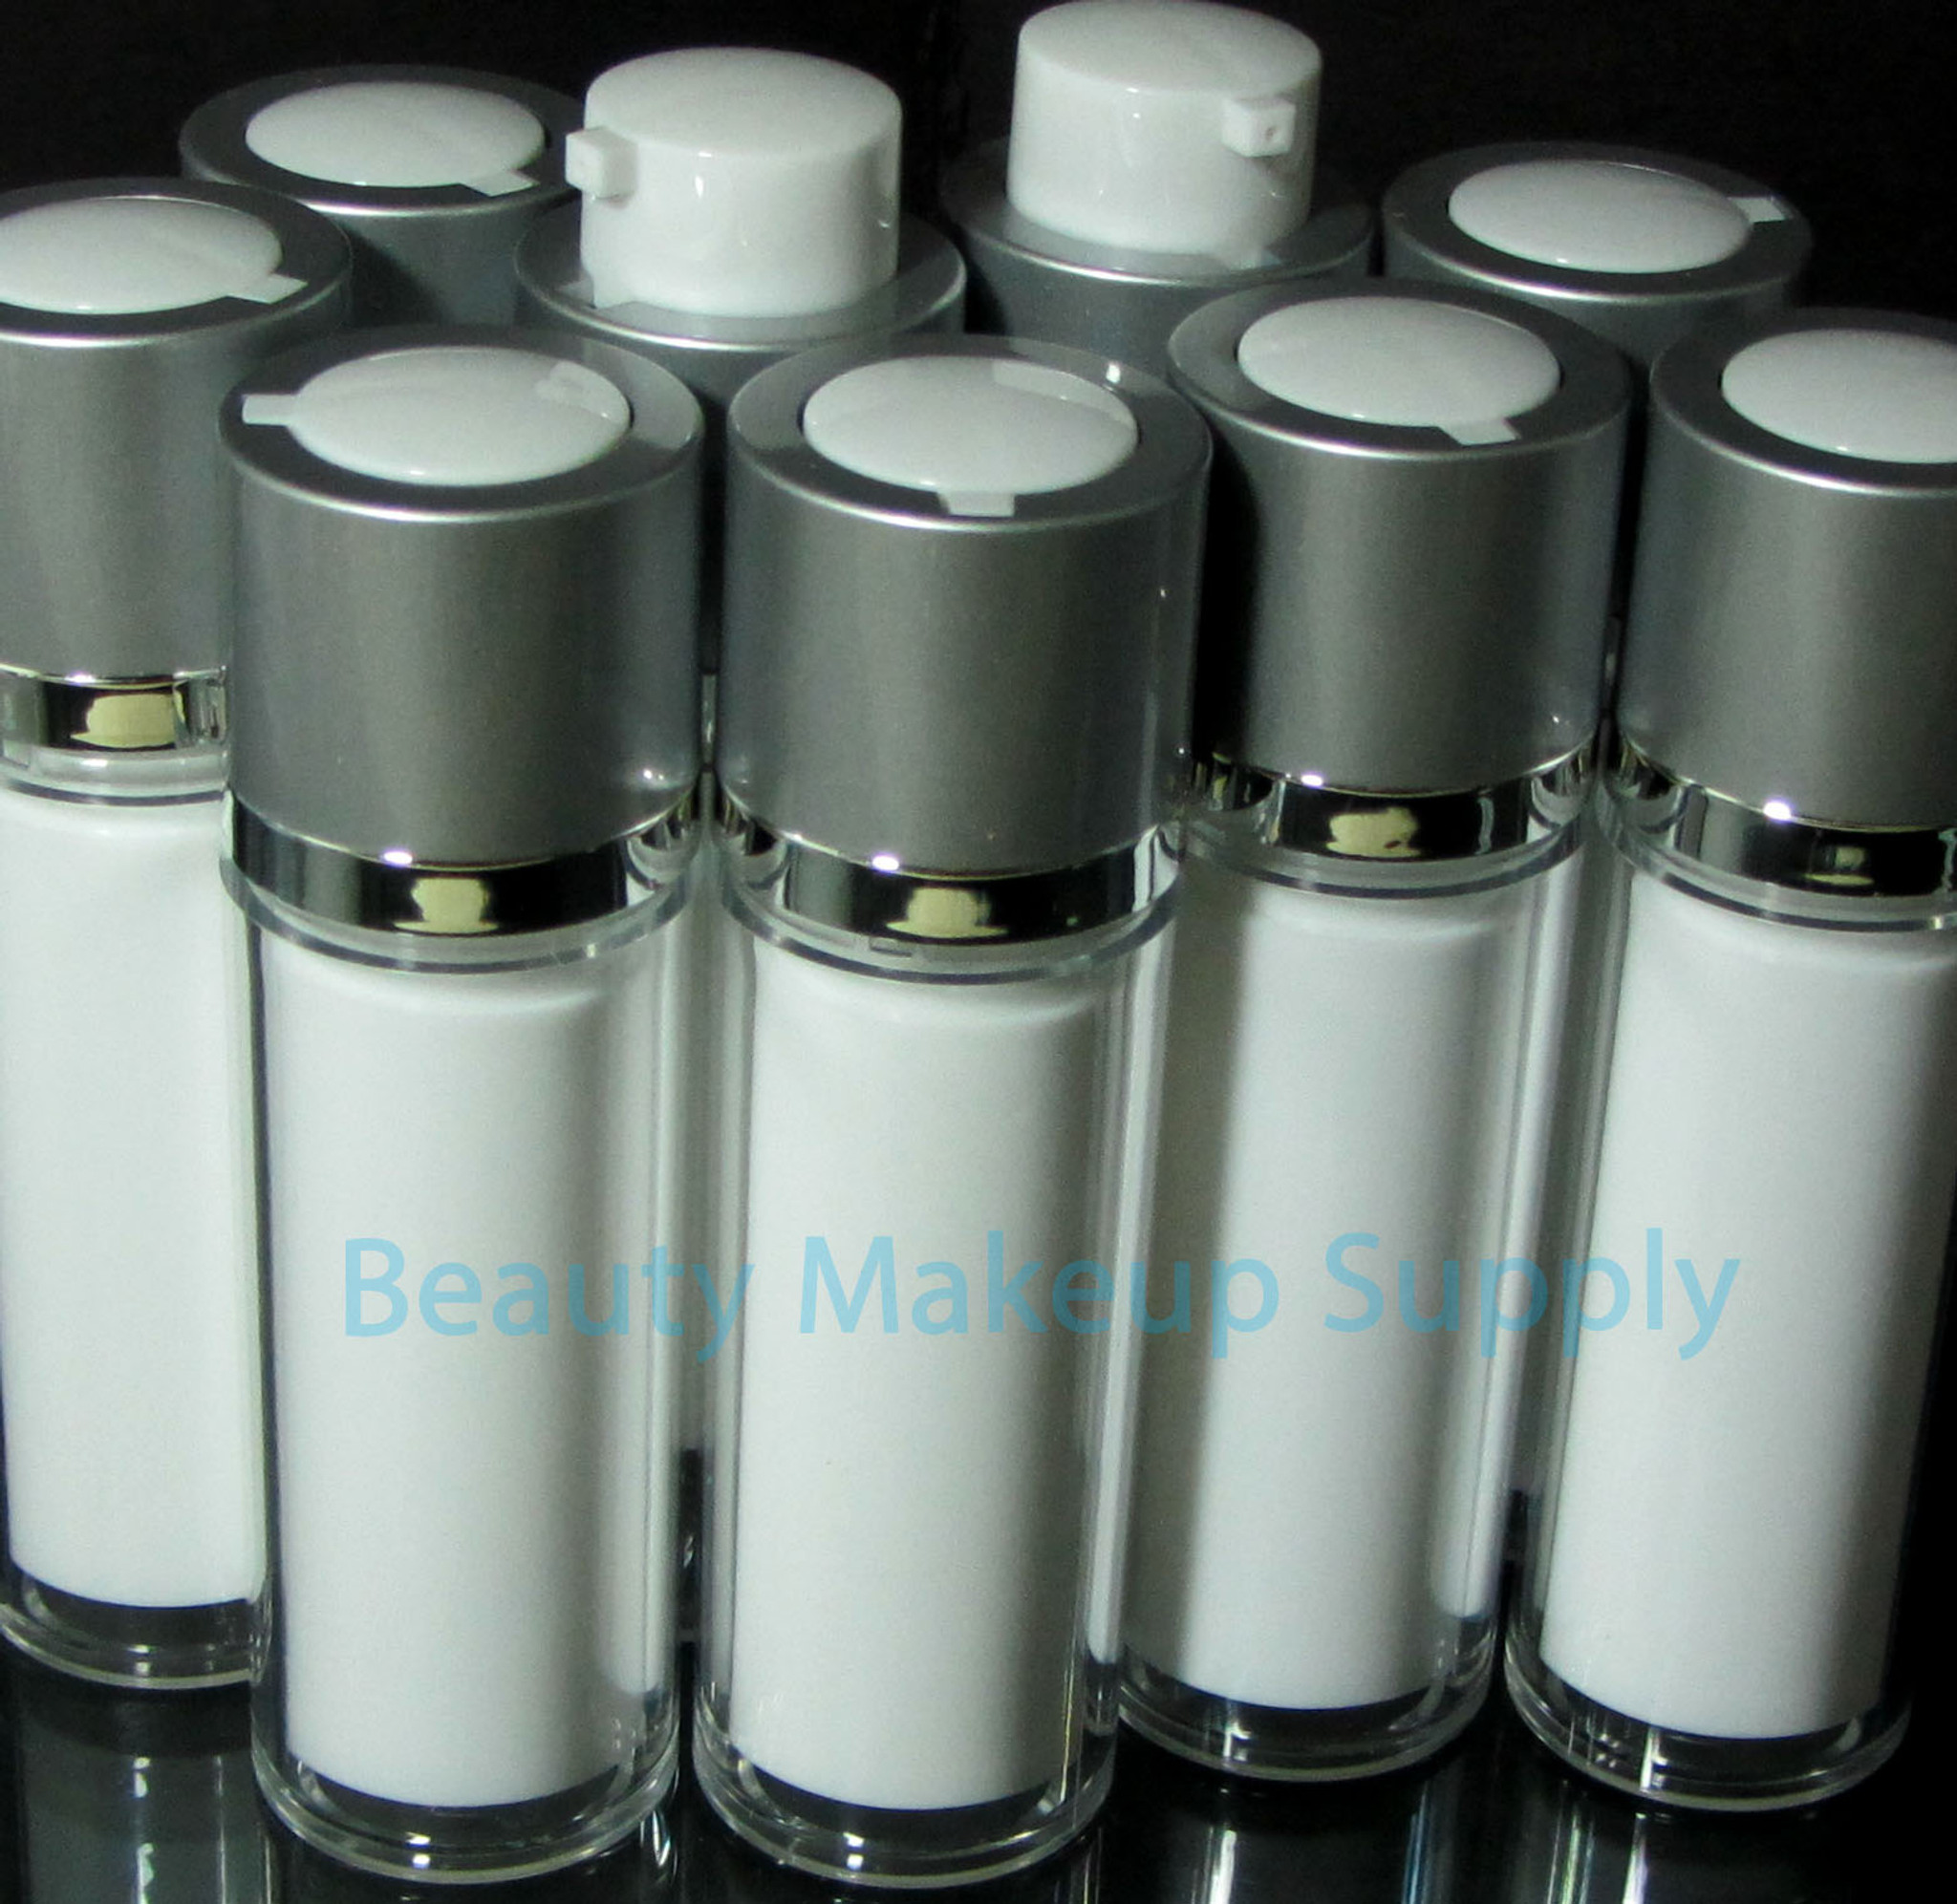 Luxury Twist Up Style Acrylic Airless Bottles - New Product at Beauty Makeup Supply